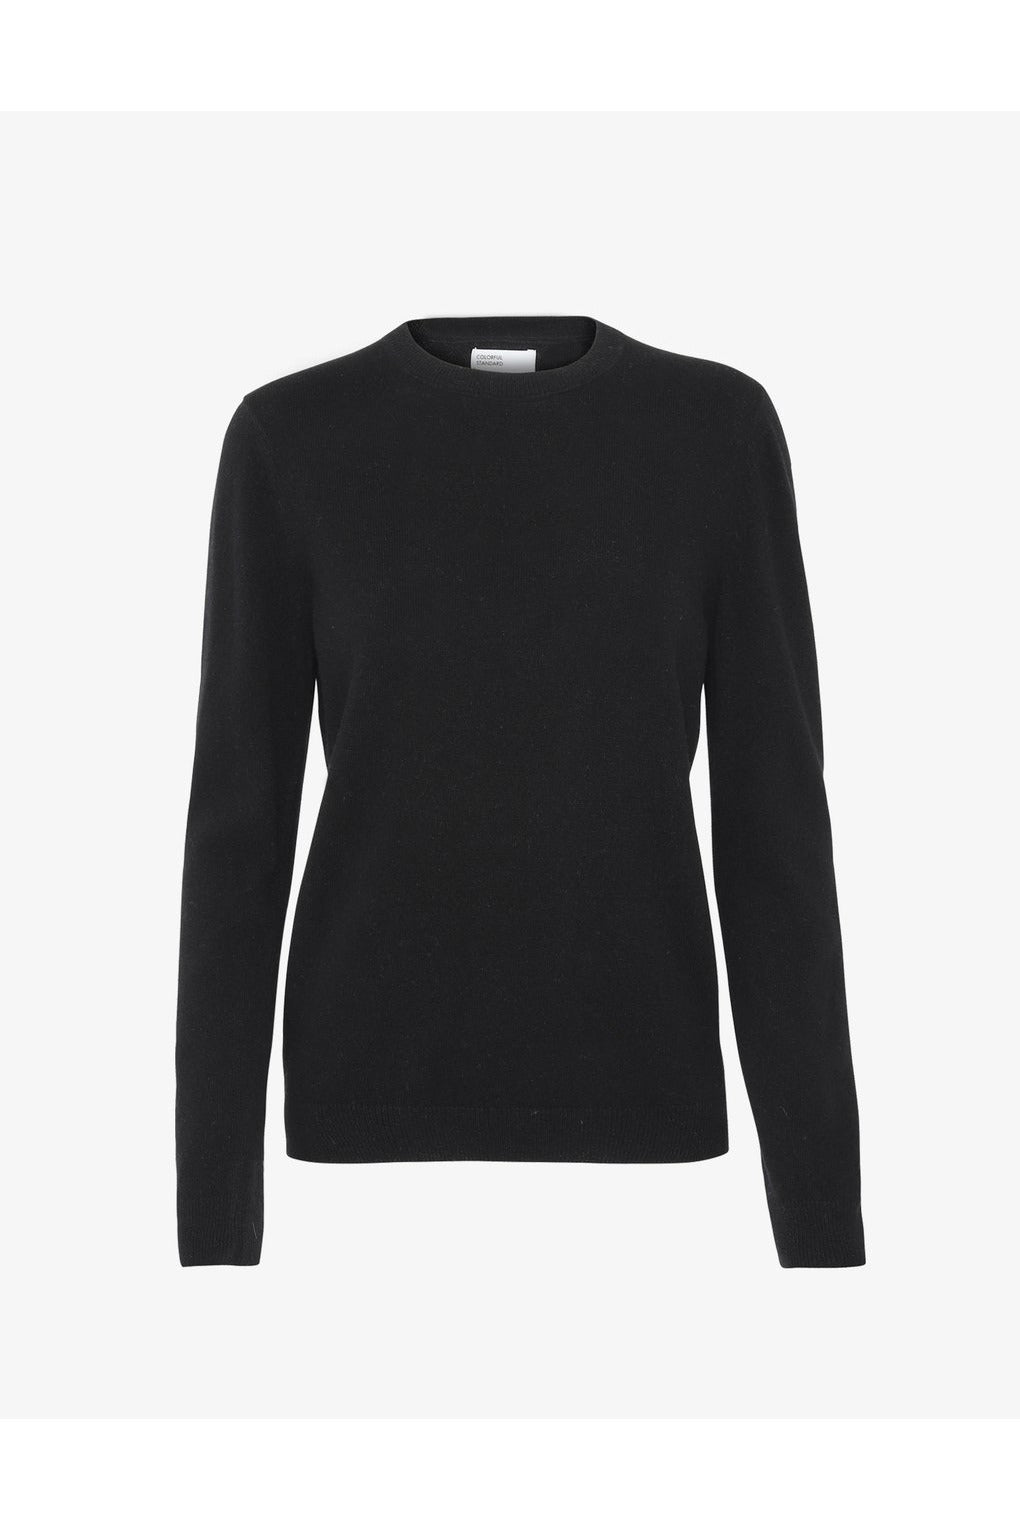 WOMEN LIGHT MERINO WOOL CREW DEEP BLACK - BEYOND STUDIOS